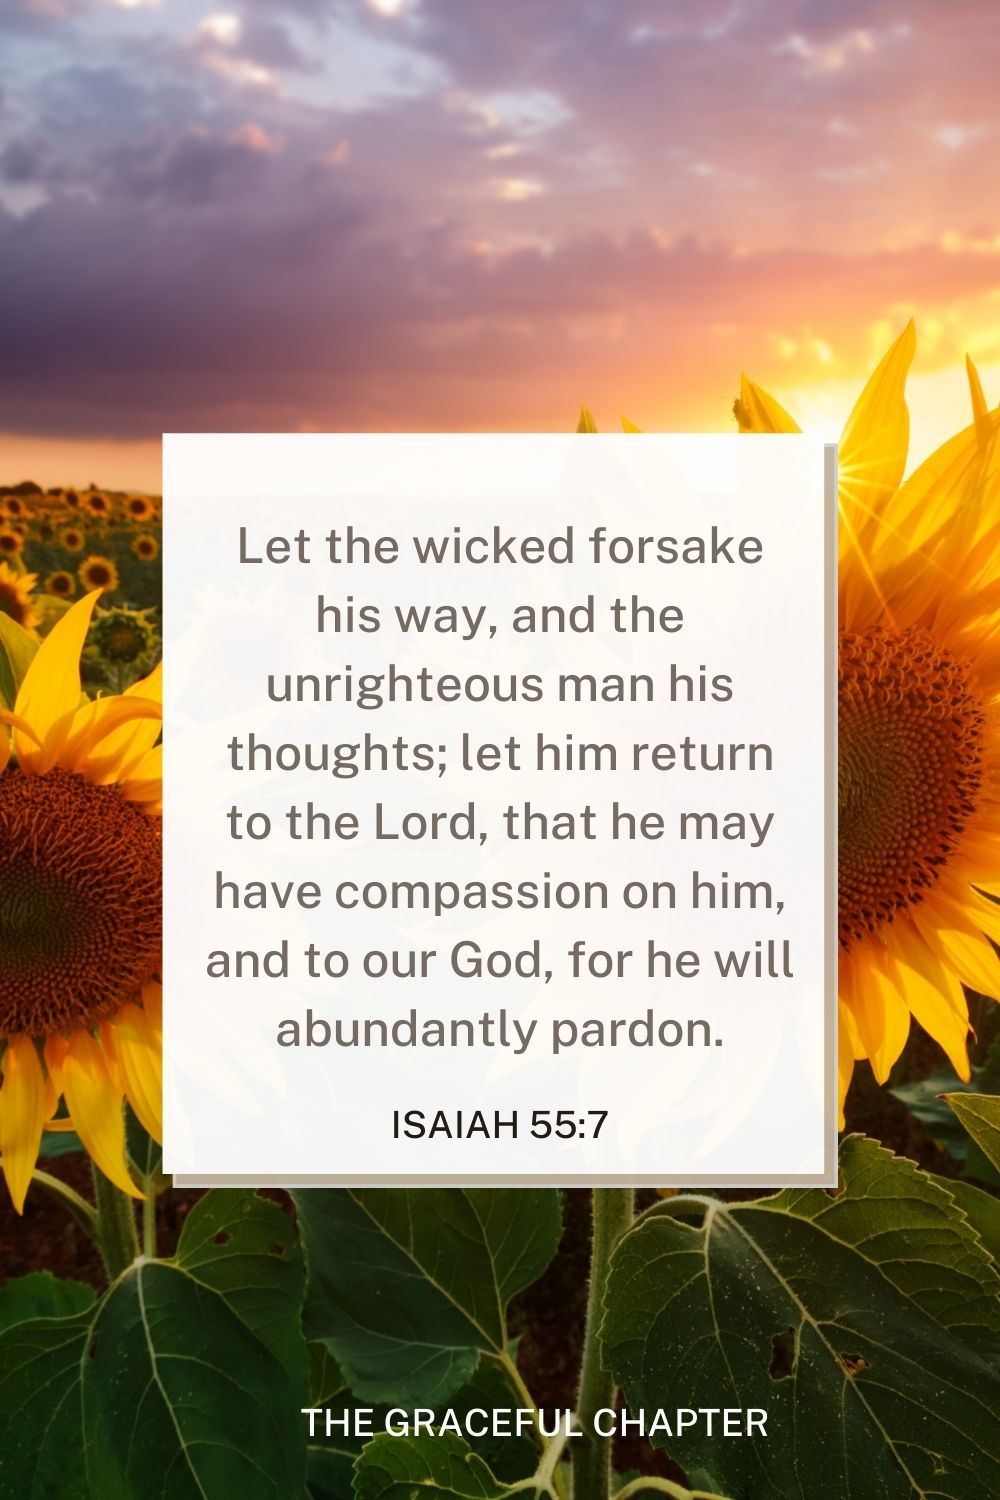 Let the wicked forsake his way, and the unrighteous man his thoughts; let him return to the Lord, that he may have compassion on him, and to our God, for he will abundantly pardon. Isaiah 55:7